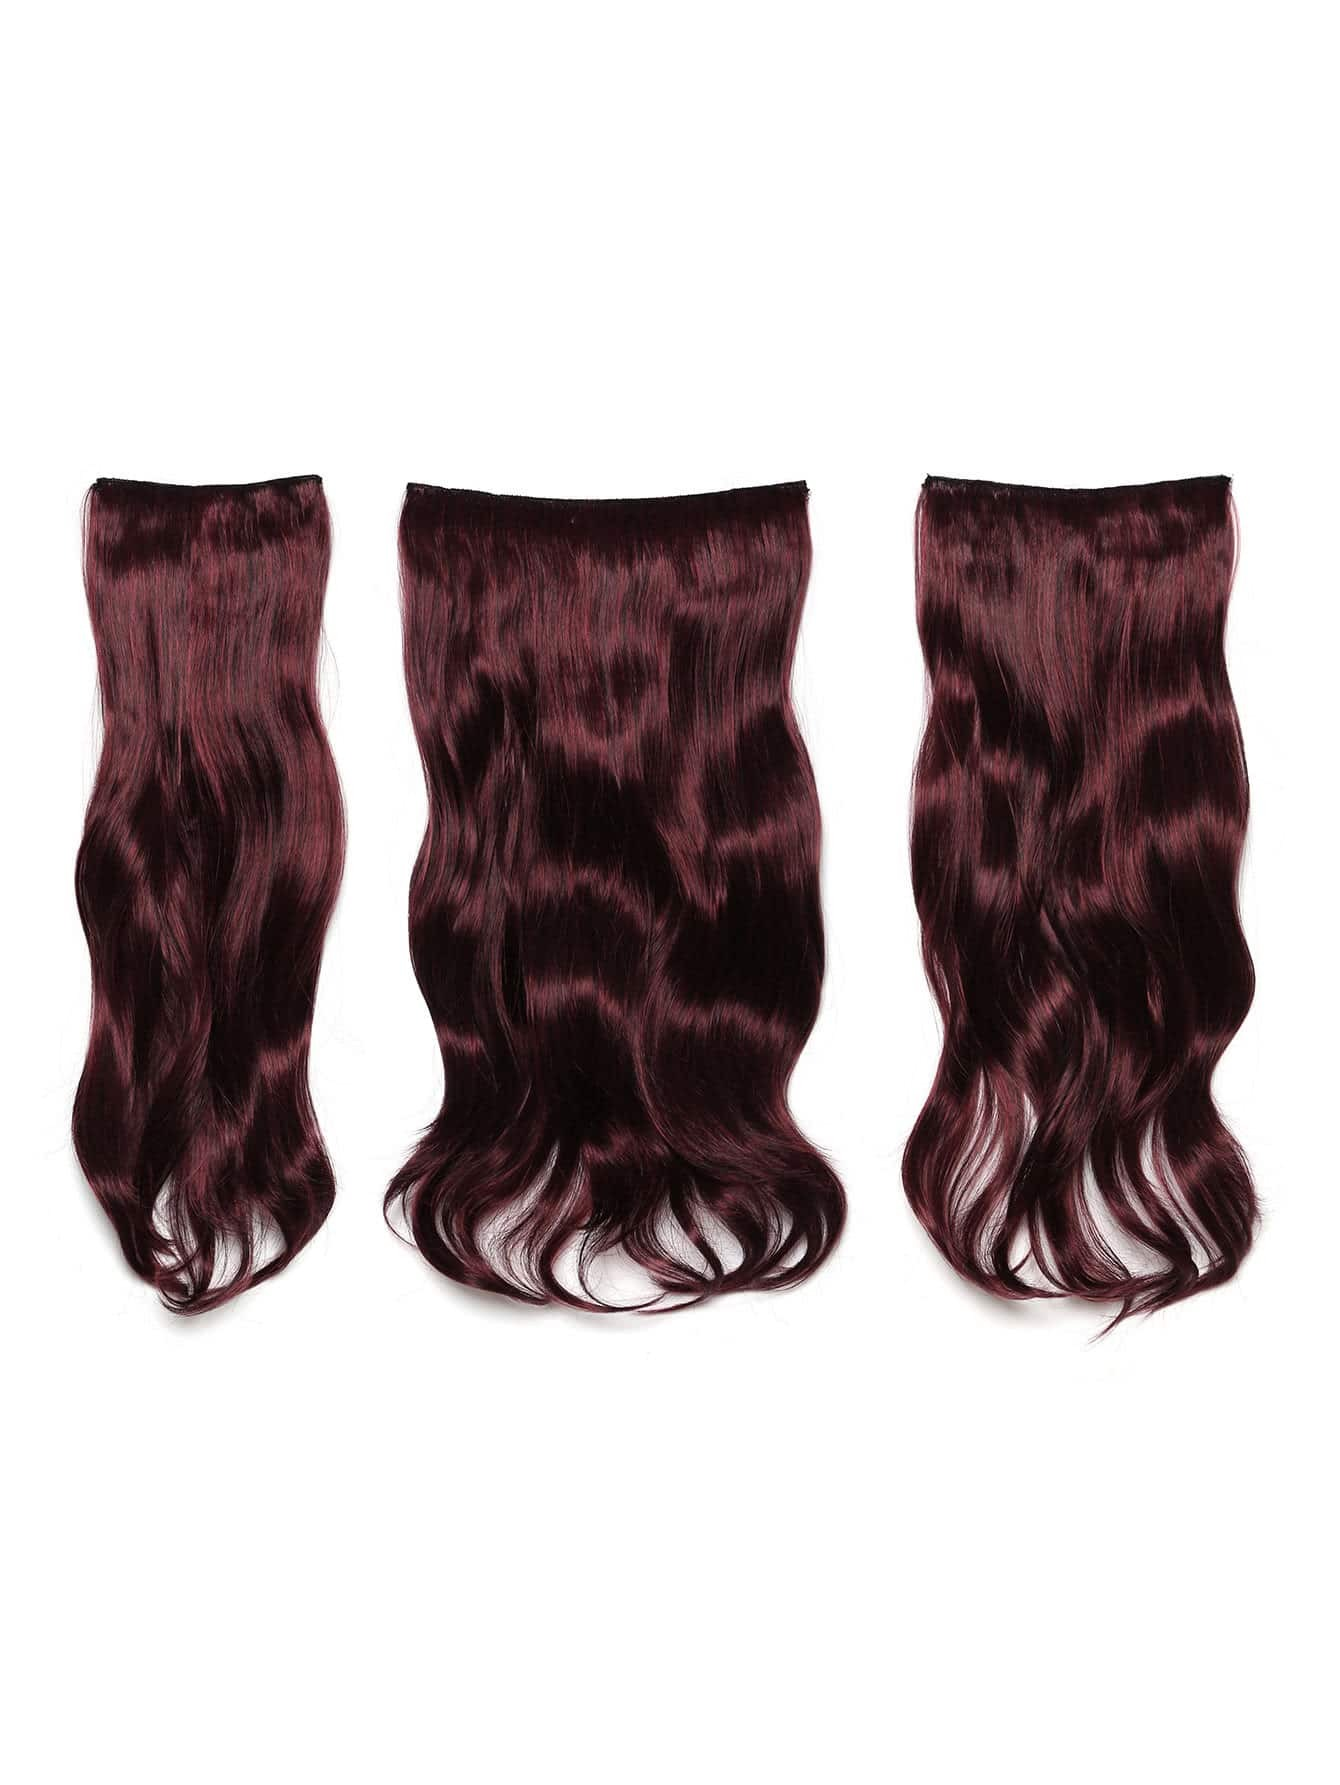 Image of Black & Burgundy Clip In Soft Wave Hair Extension 3pcs